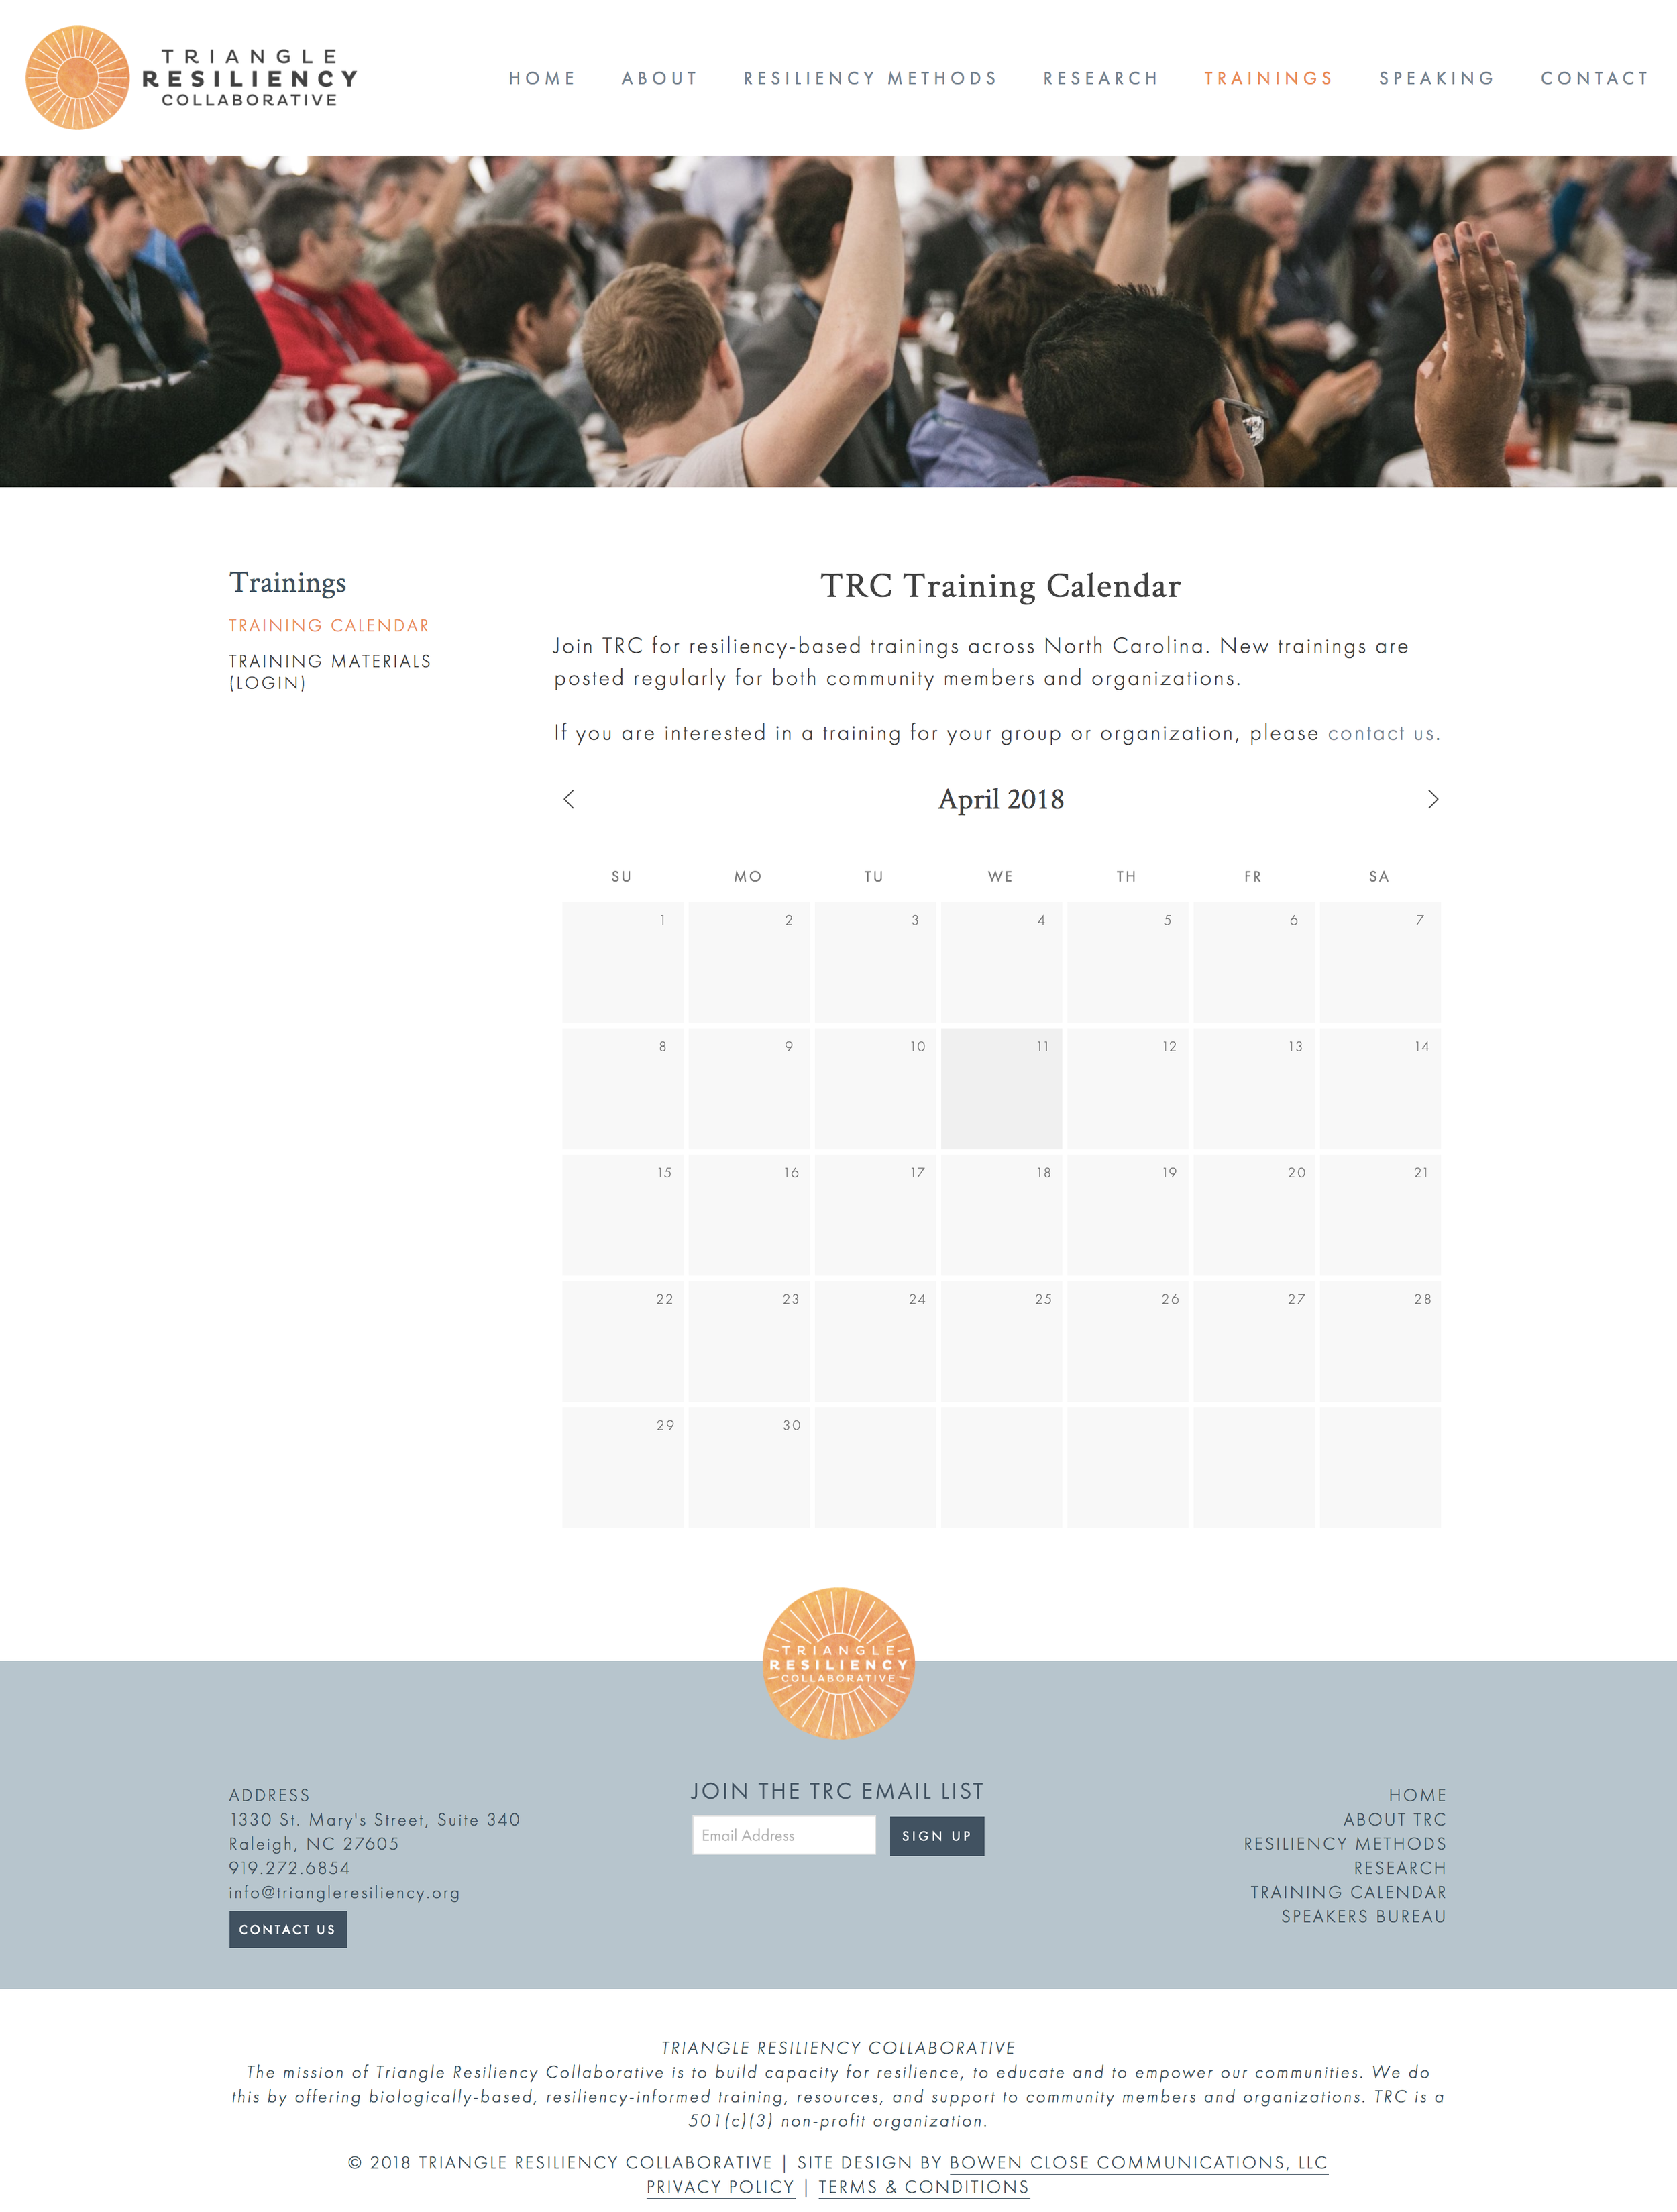 Training Calendar — Triangle Resiliency Collaborative.png